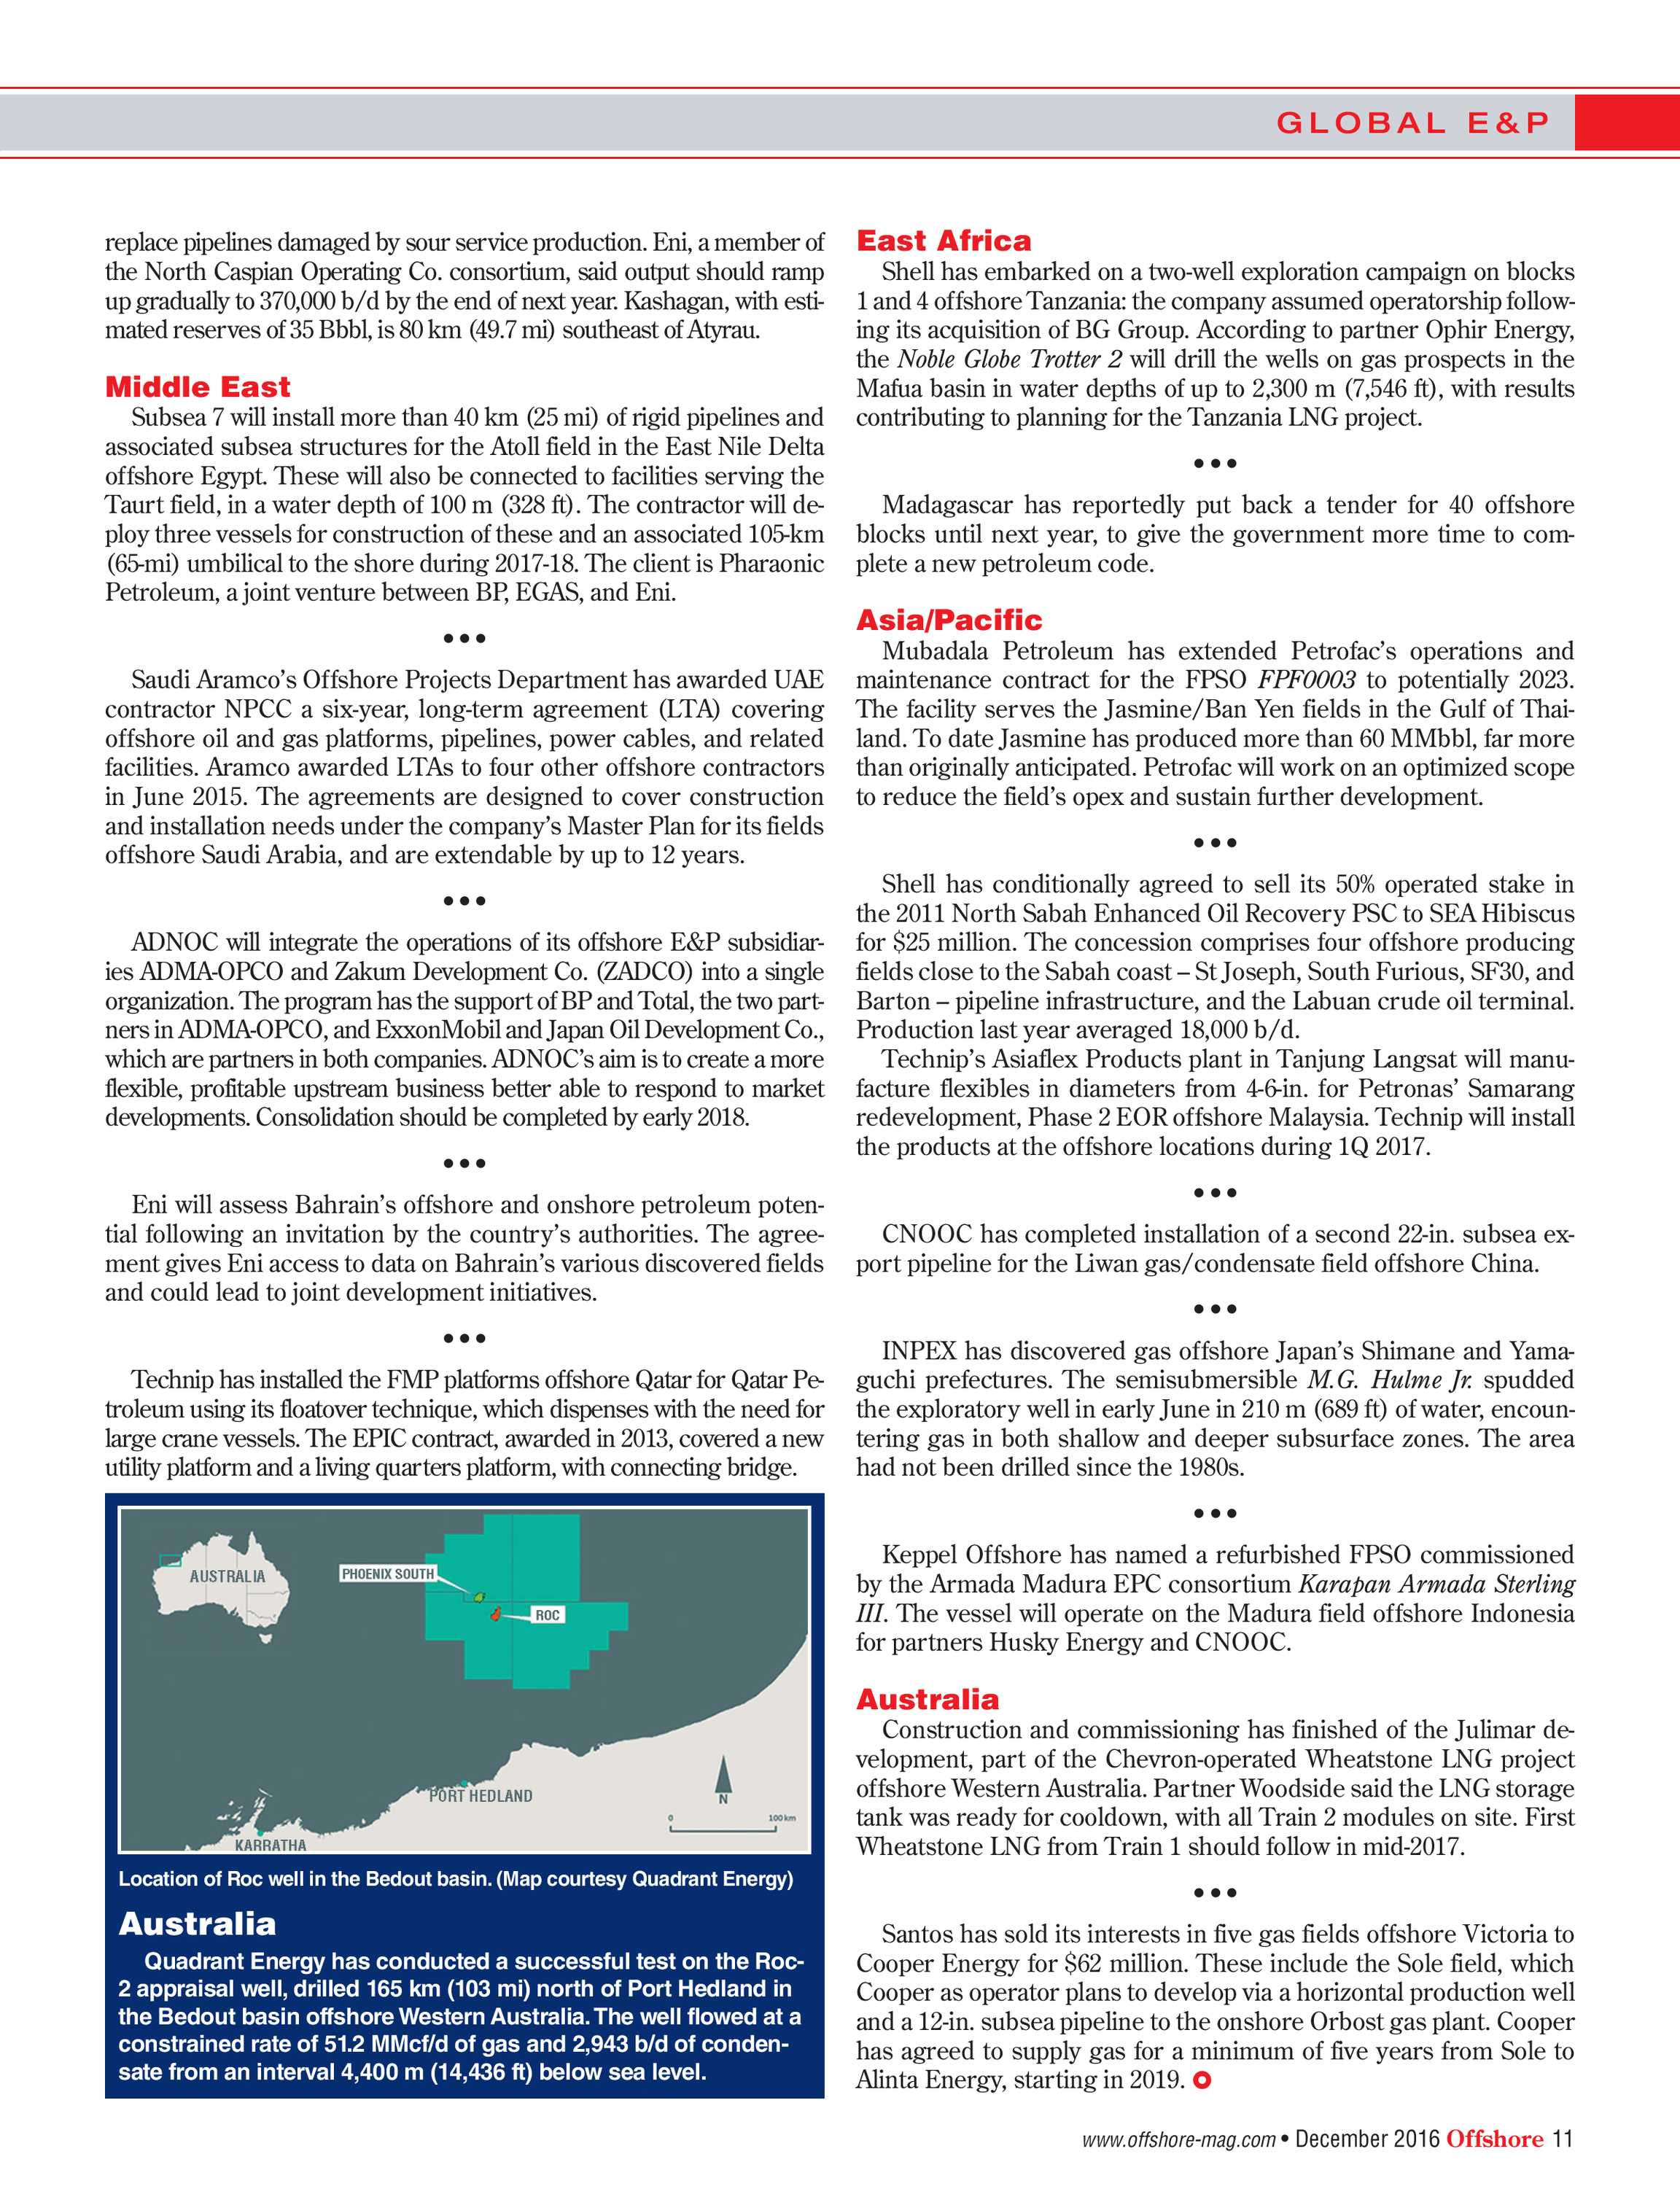 Offshore Magazine - December 2016 - page 11